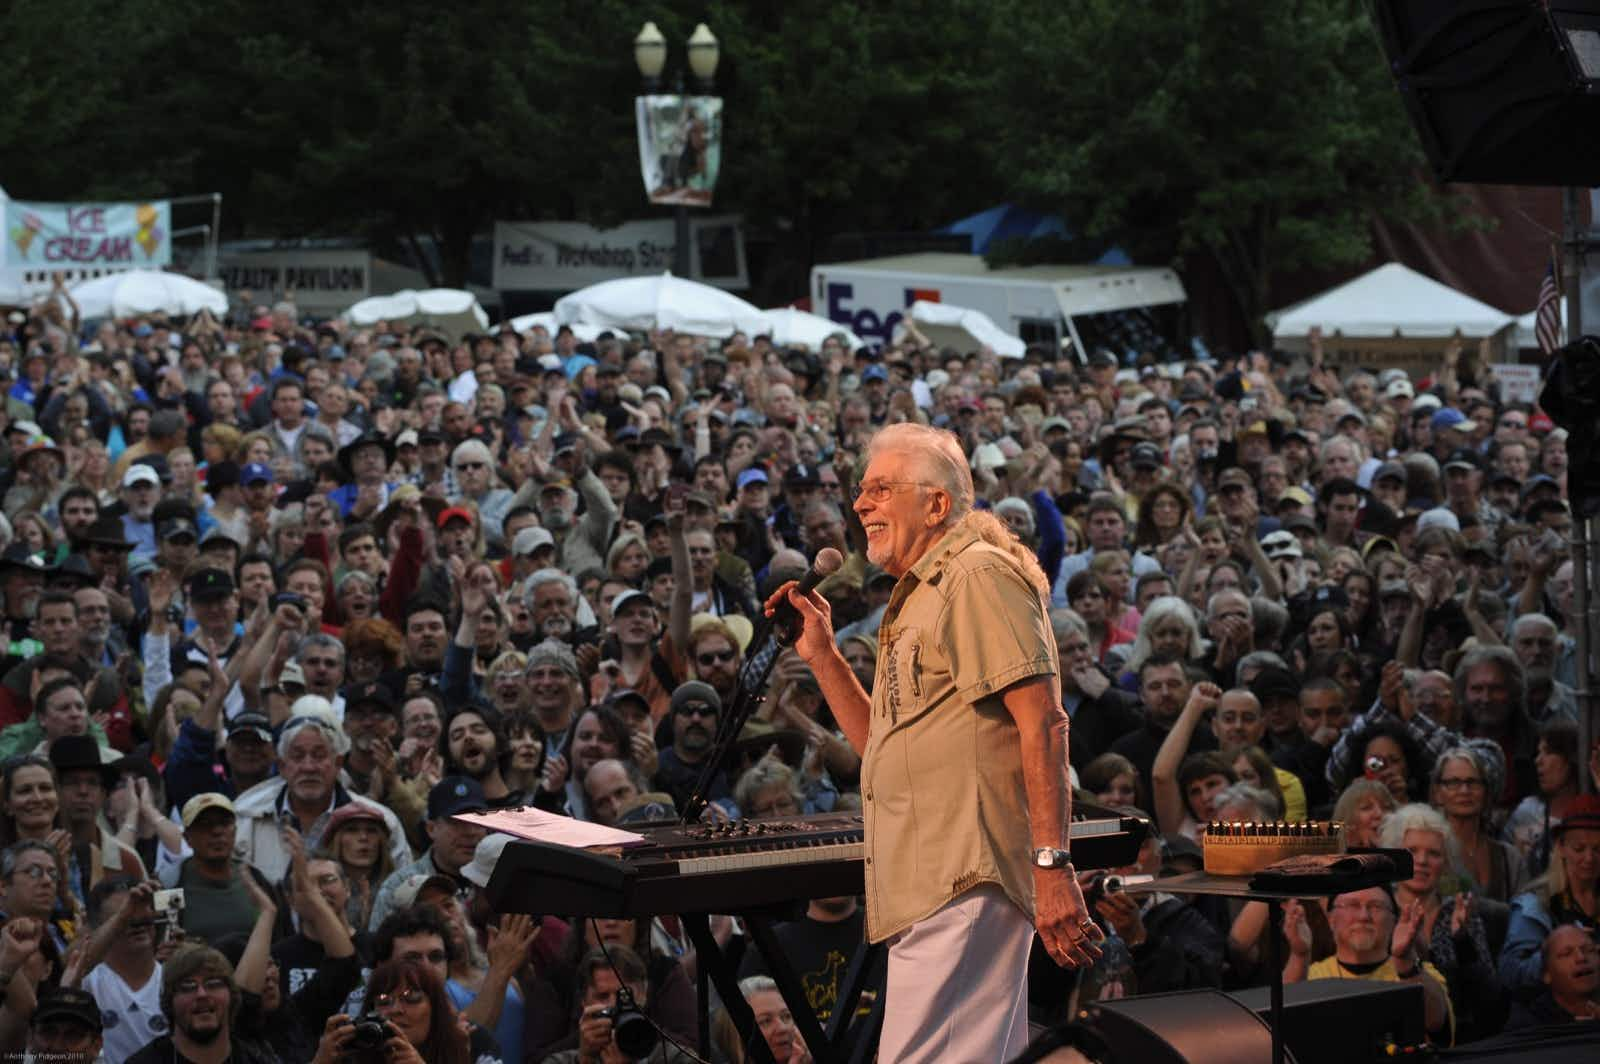 A huge crowd of concertgoers are seen behind a white haired man playing on stage